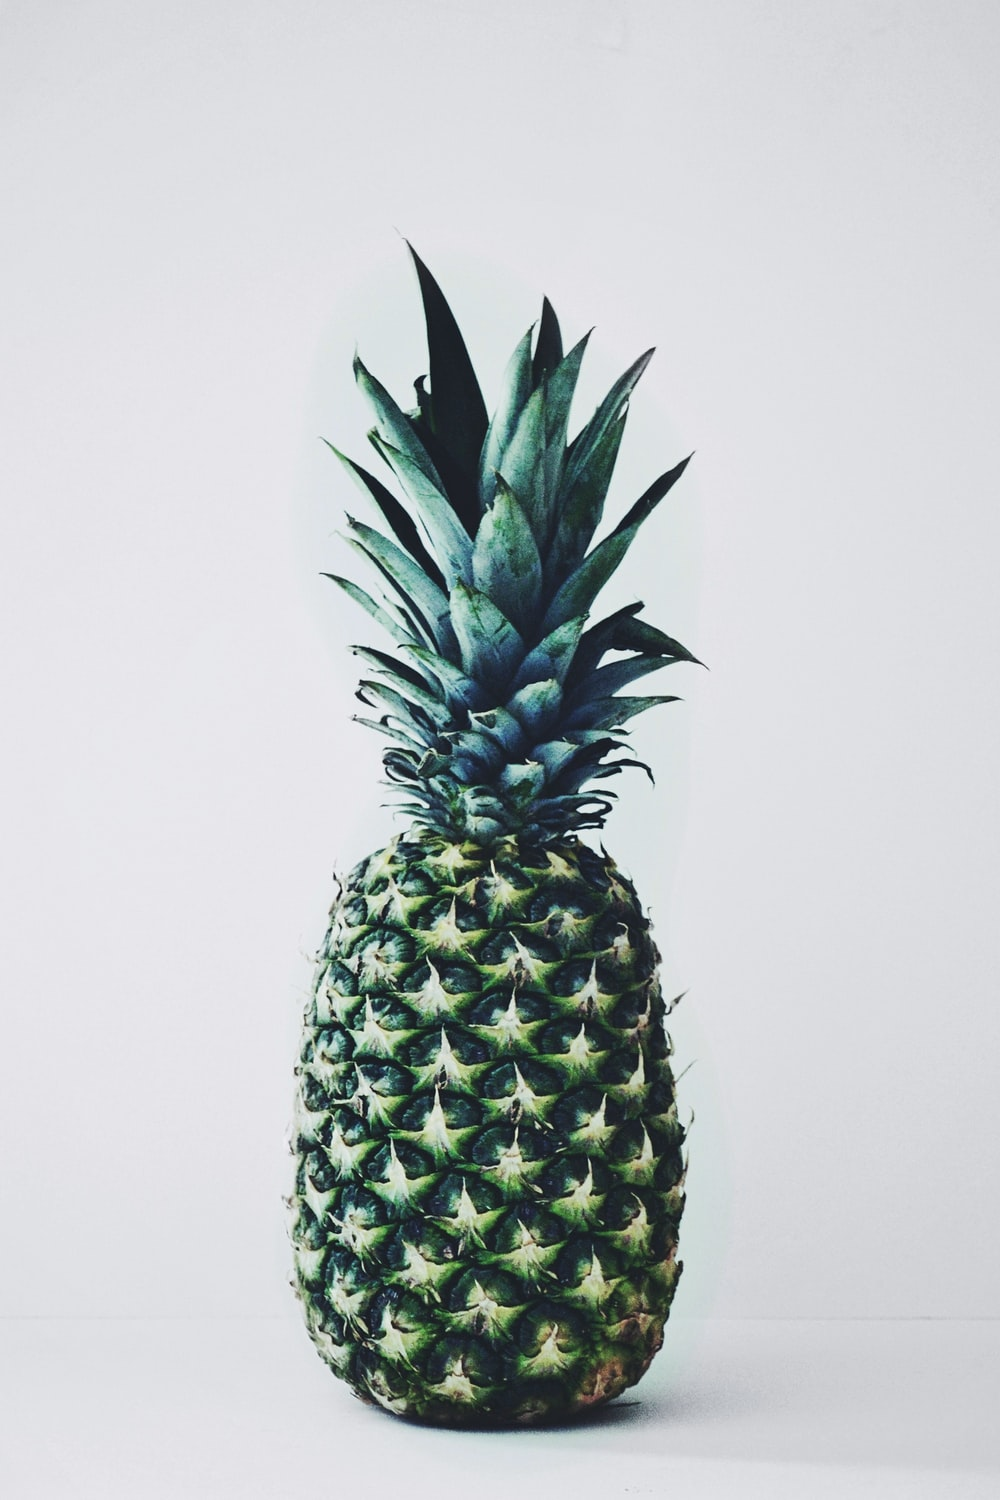 green pineapple on white background